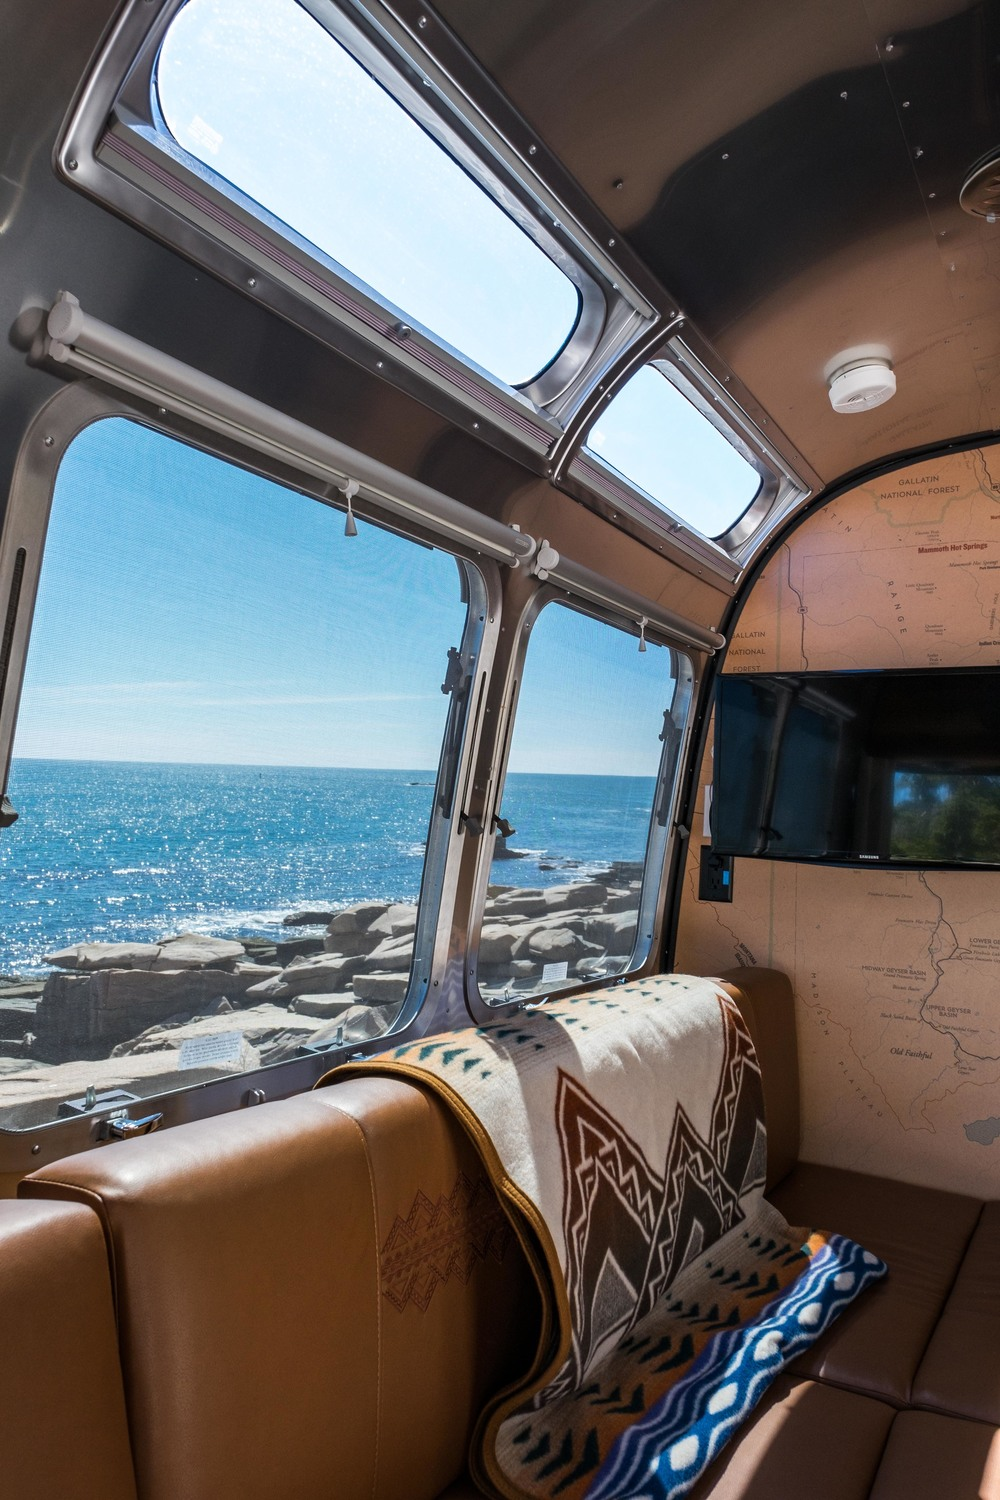 The Pendleton Limited Edition National Parks Airstream brings the outside world in...